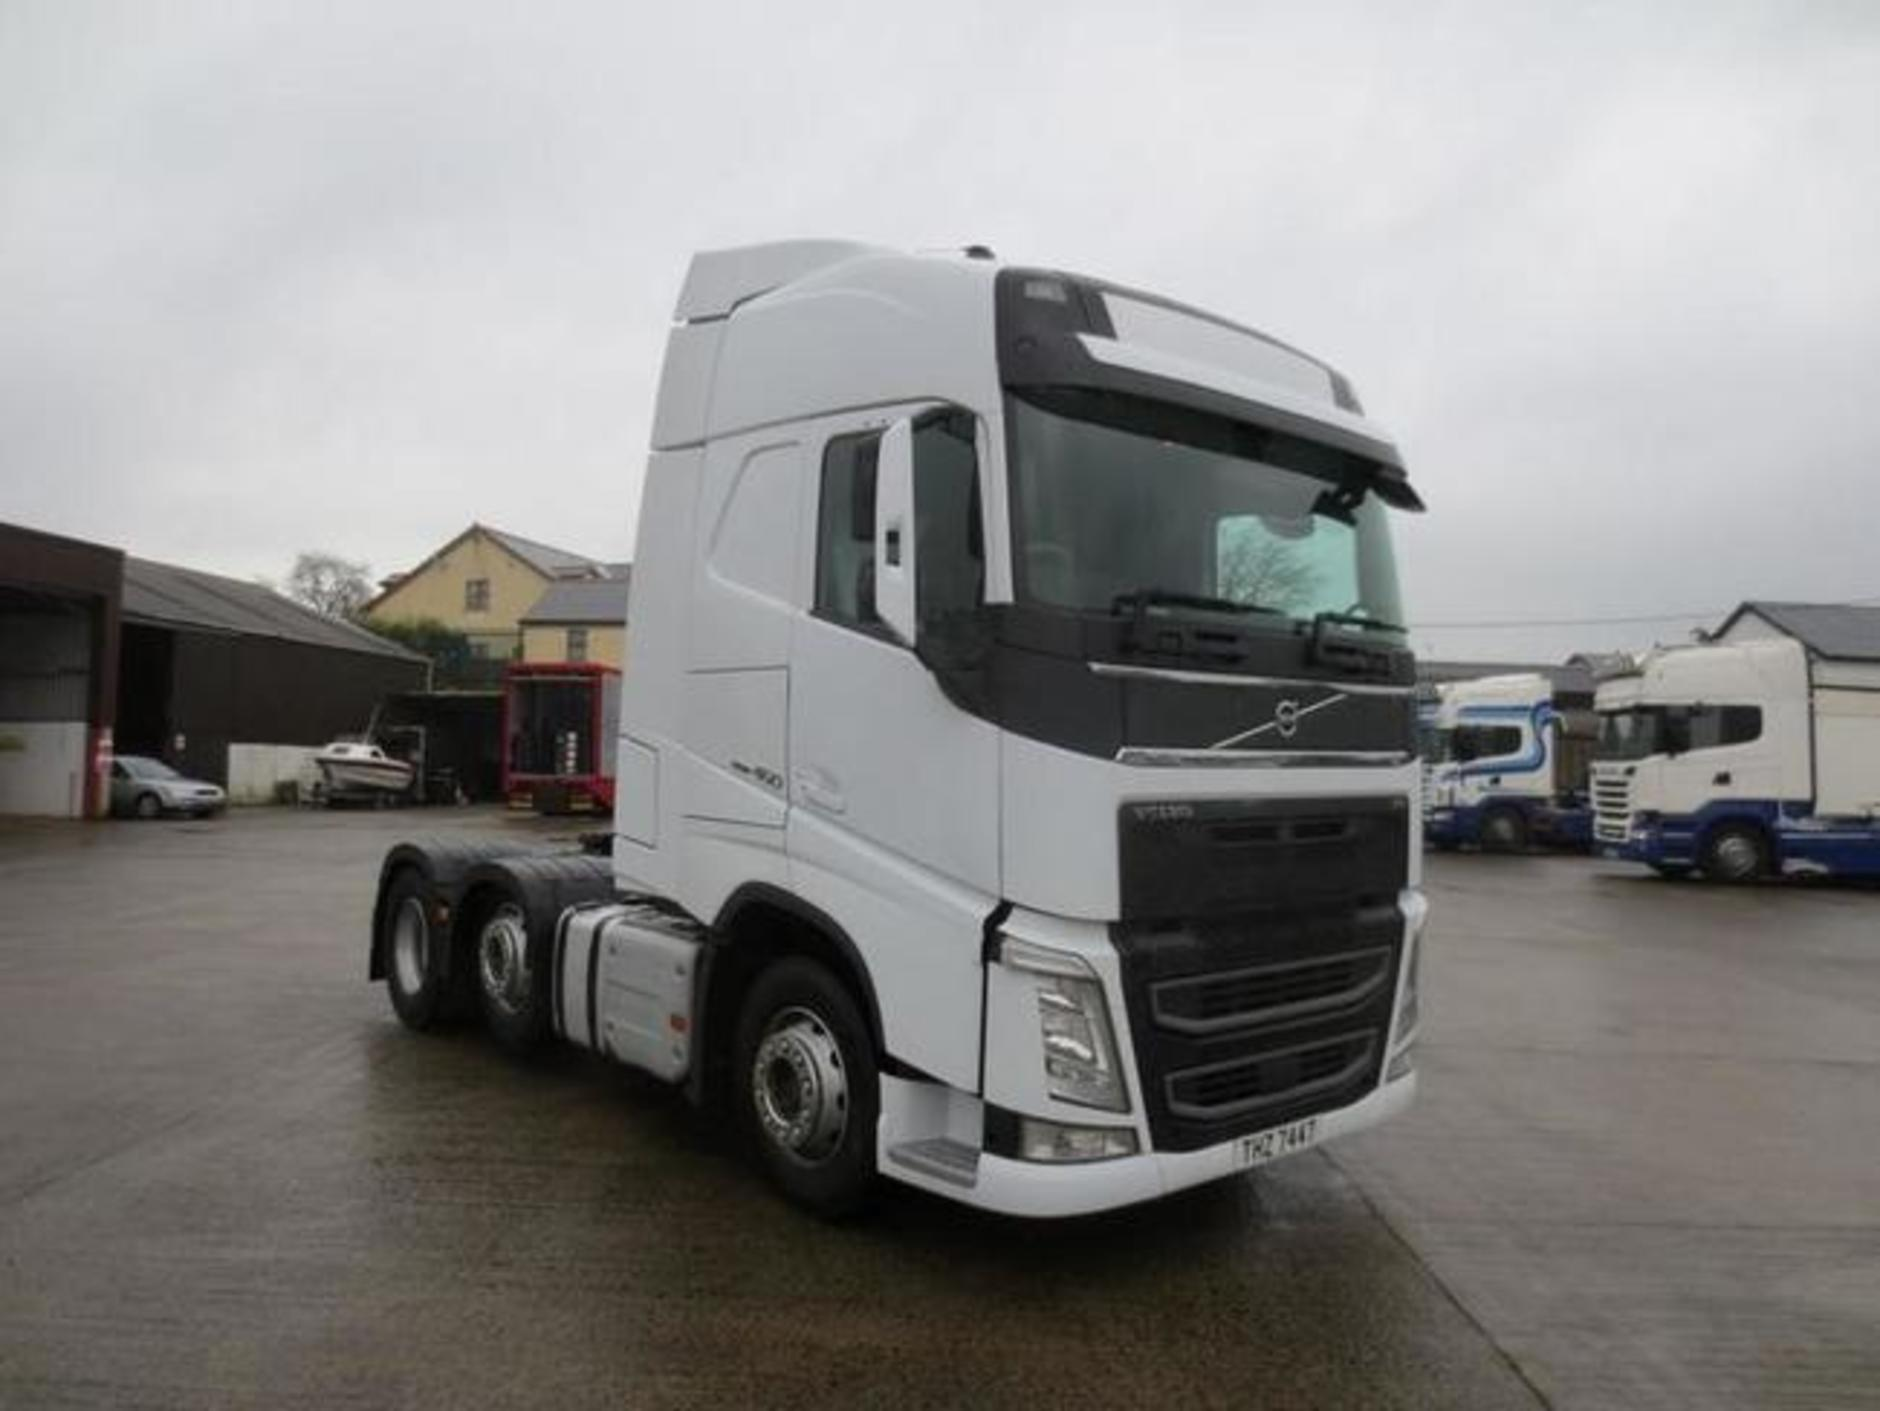 Euro-6 2015 Volvo FH 460 Globetrotter 6x2 mid-lift tractor ...